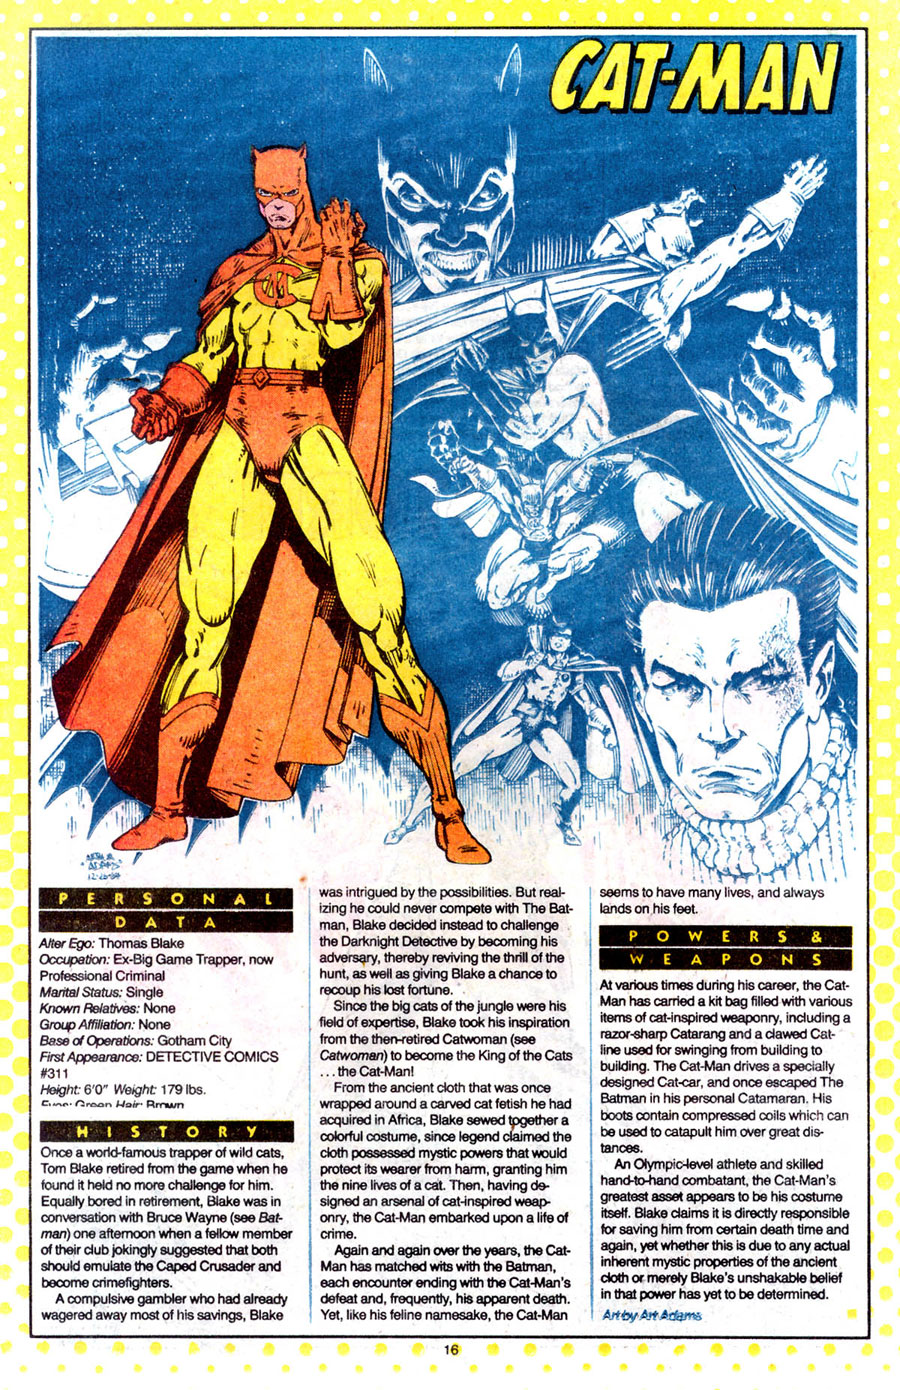 Art Adams, from Who's Who: The Definitive Guide to the DC Universe